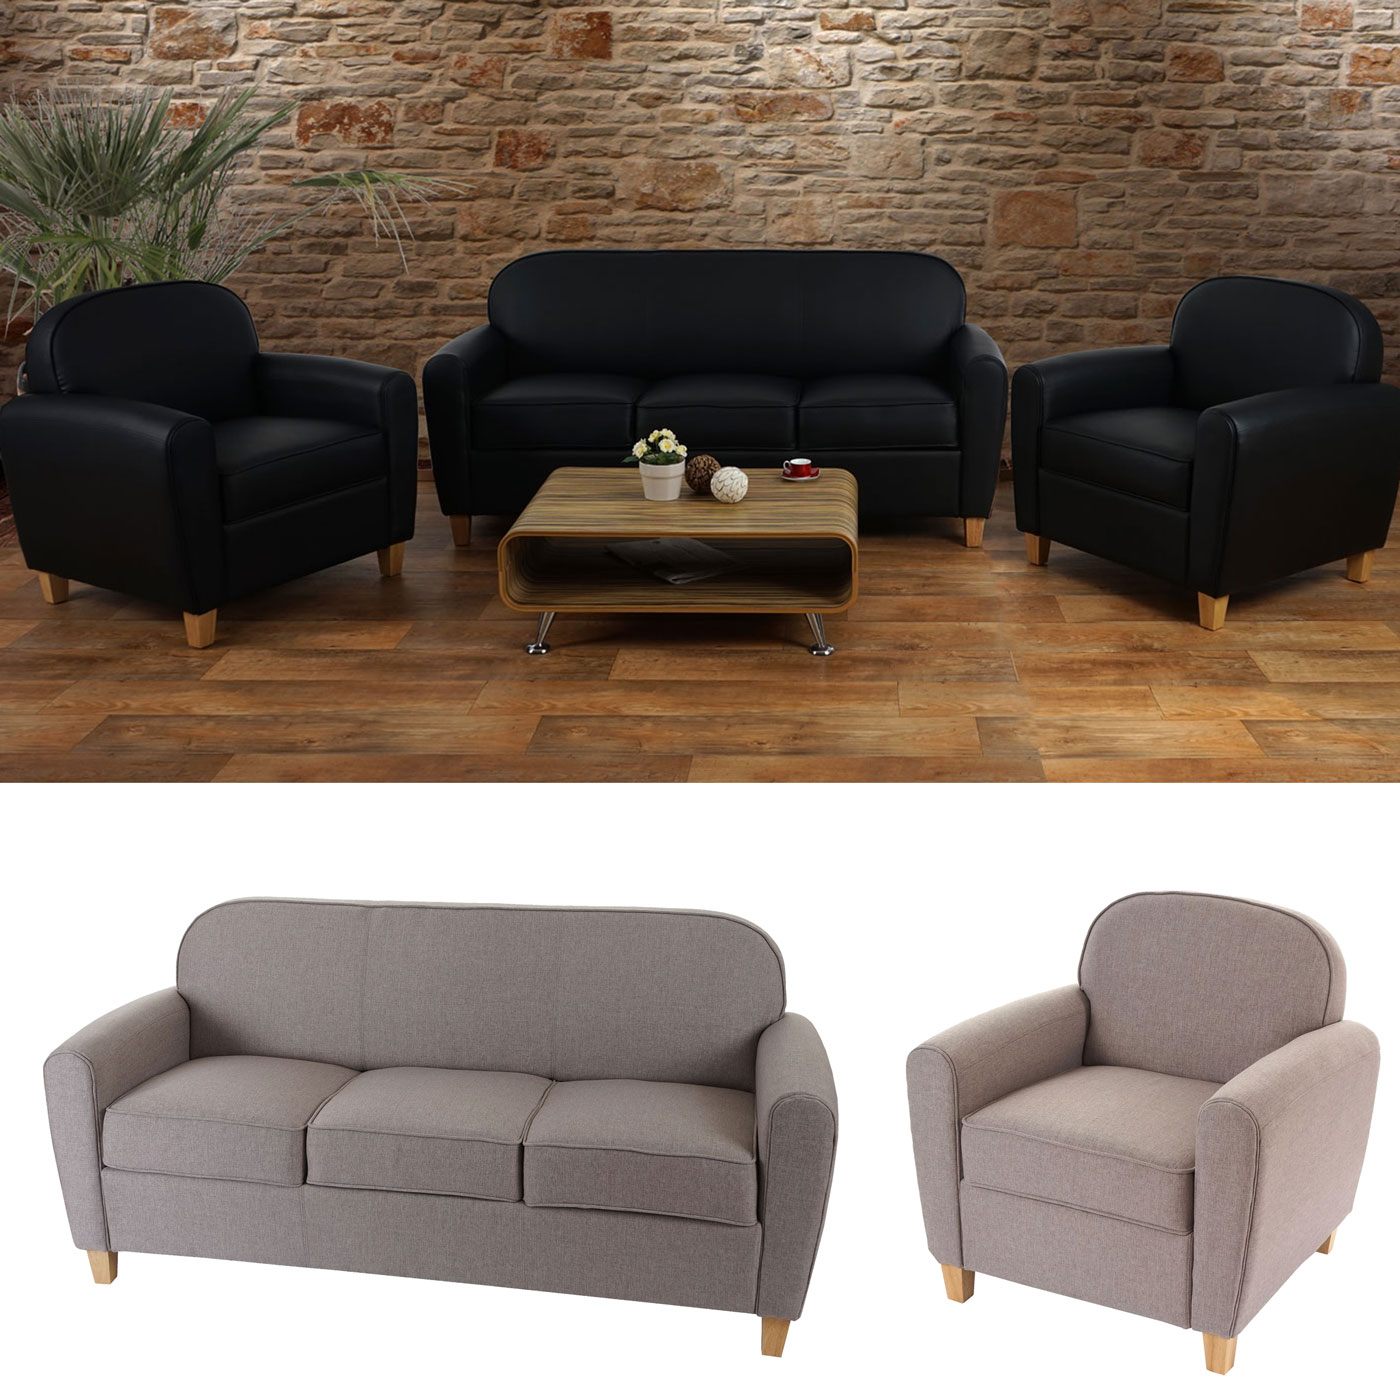 3 2 1 couchgarnitur malm t377 sofa loungesofa retro 50er jahre design ebay. Black Bedroom Furniture Sets. Home Design Ideas